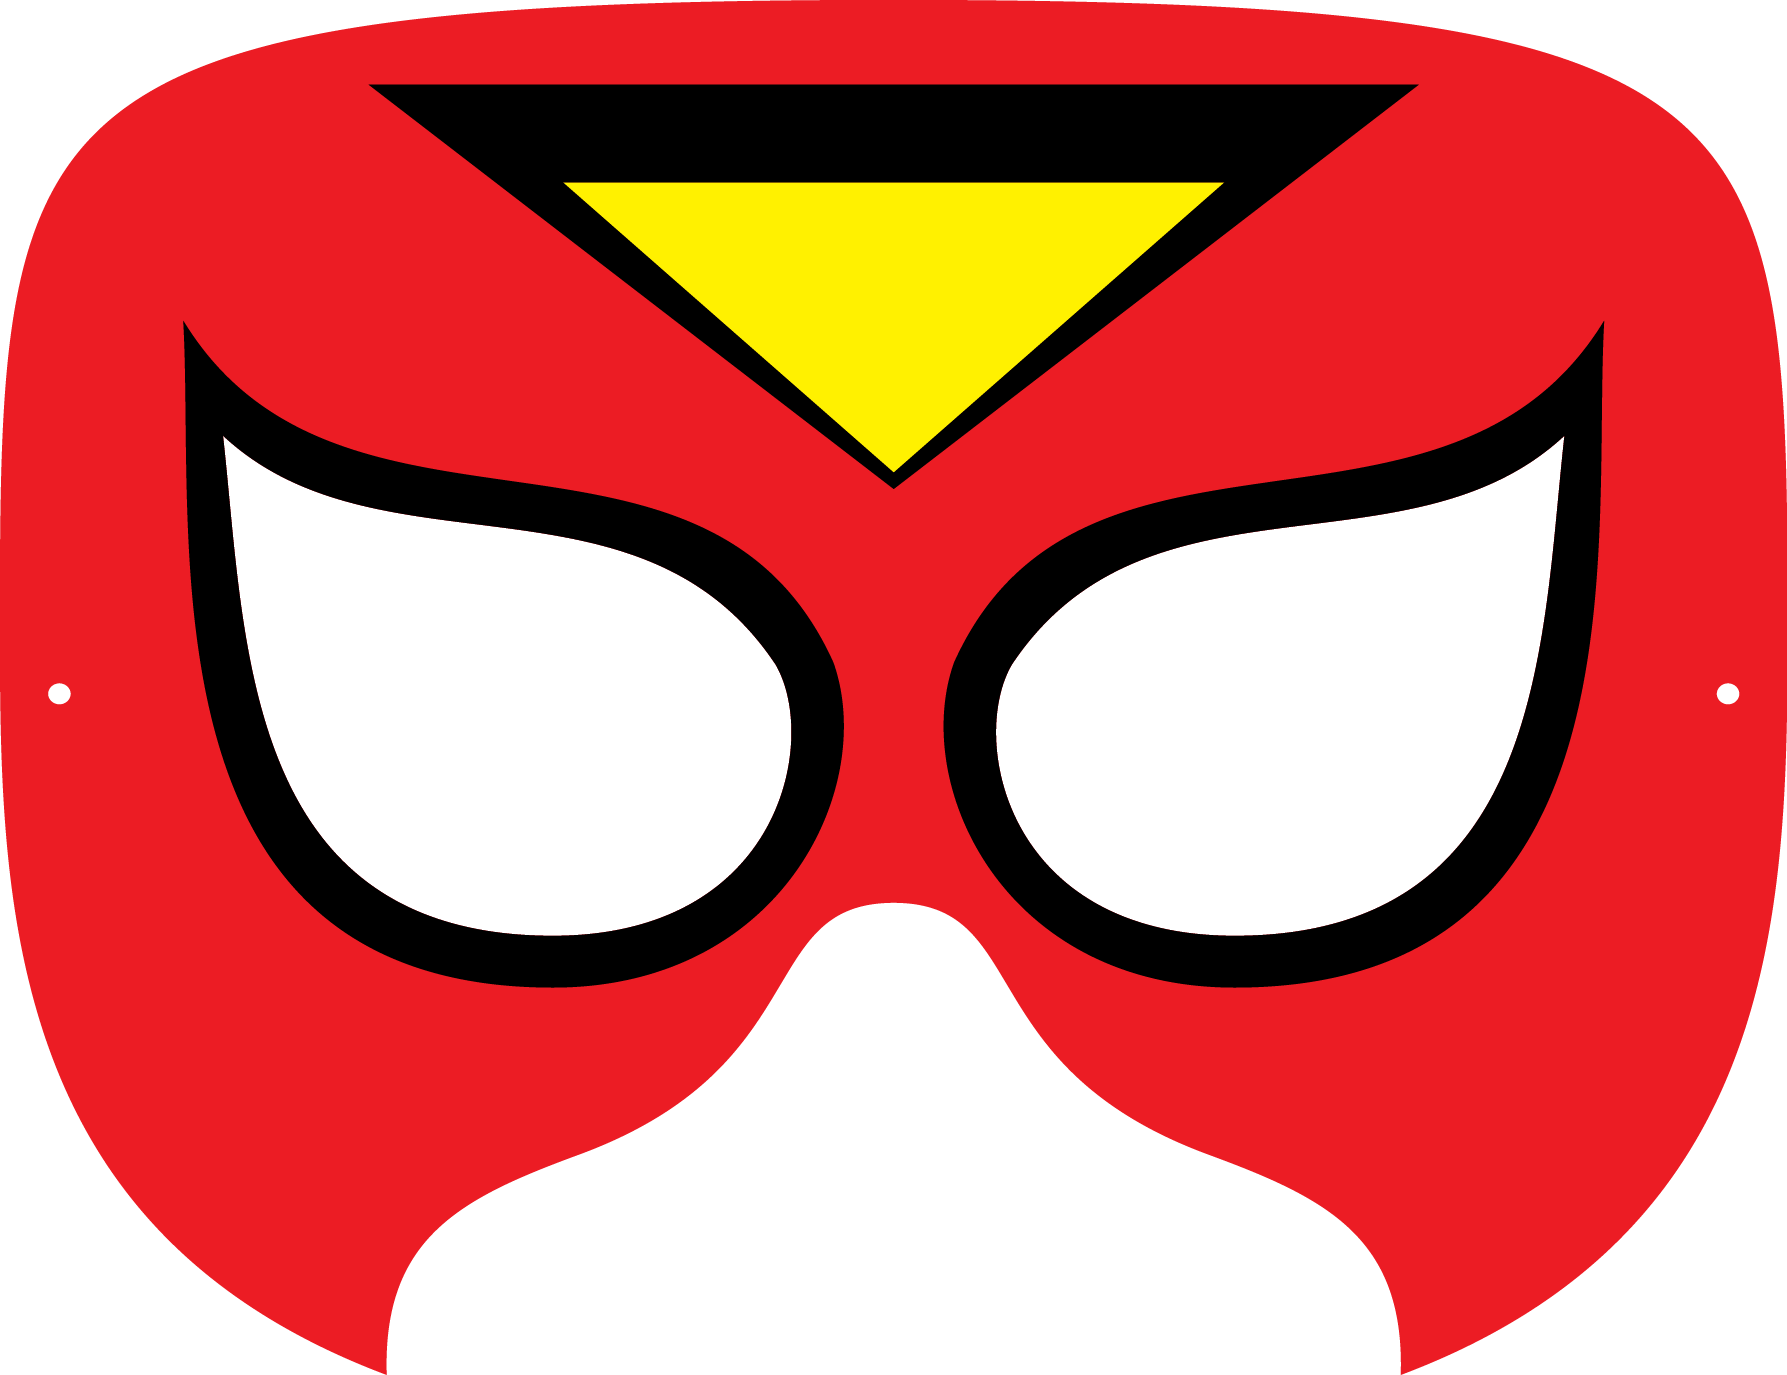 photograph relating to Superhero Printable Mask called Superhero Mask Template Free of charge obtain excellent Superhero Mask